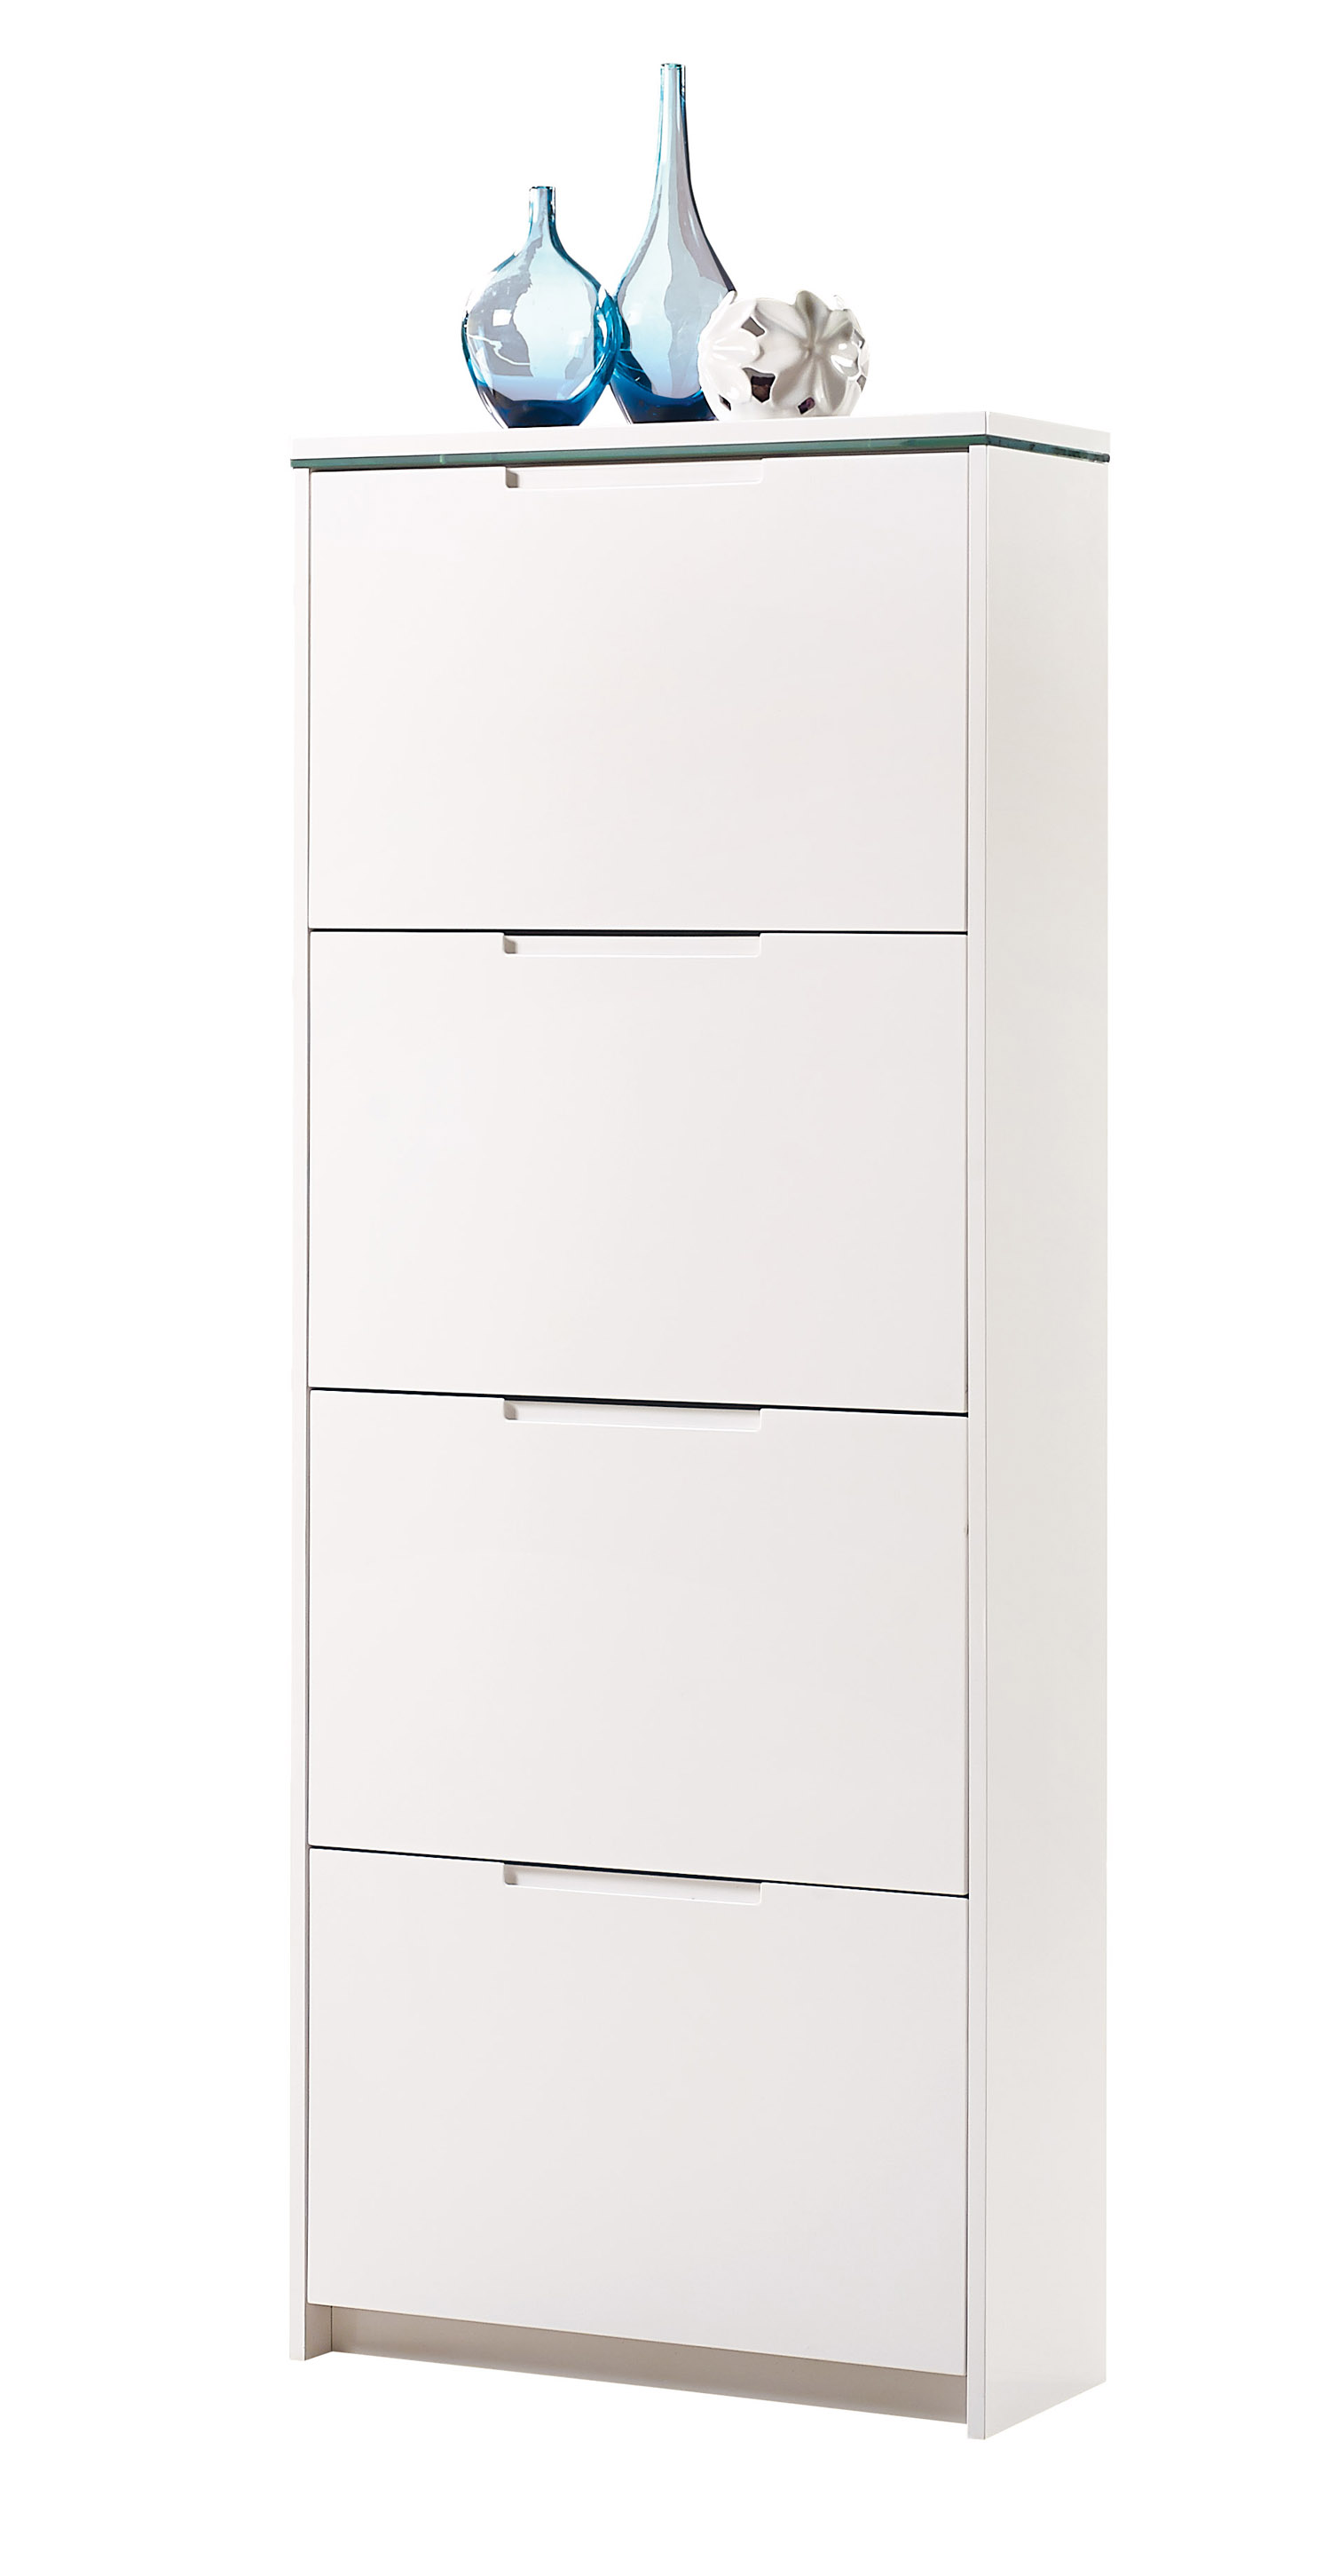 schuhschrank schuhe schuhkipper 3 4 kipper mdf weiss. Black Bedroom Furniture Sets. Home Design Ideas